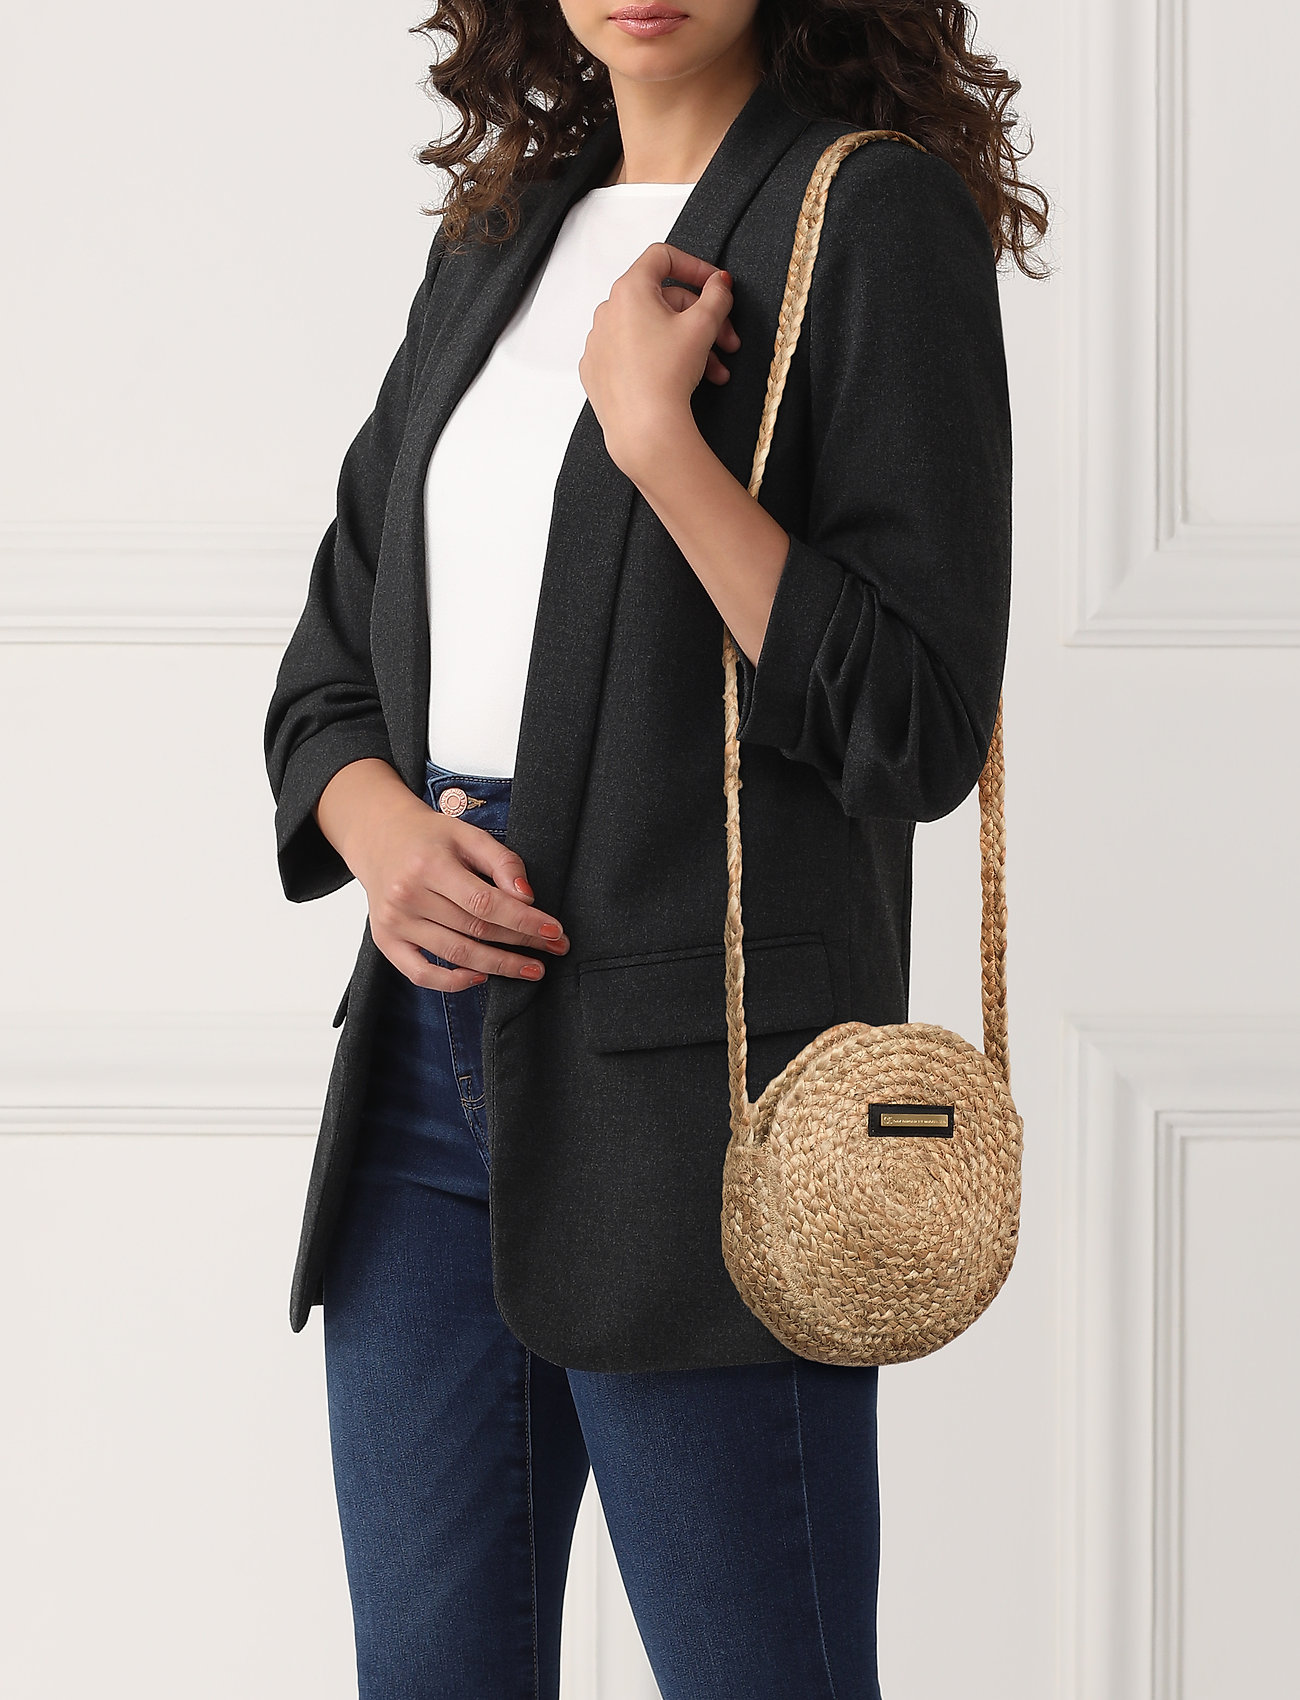 DAY et Day Straw Round Bag S - NATURAL